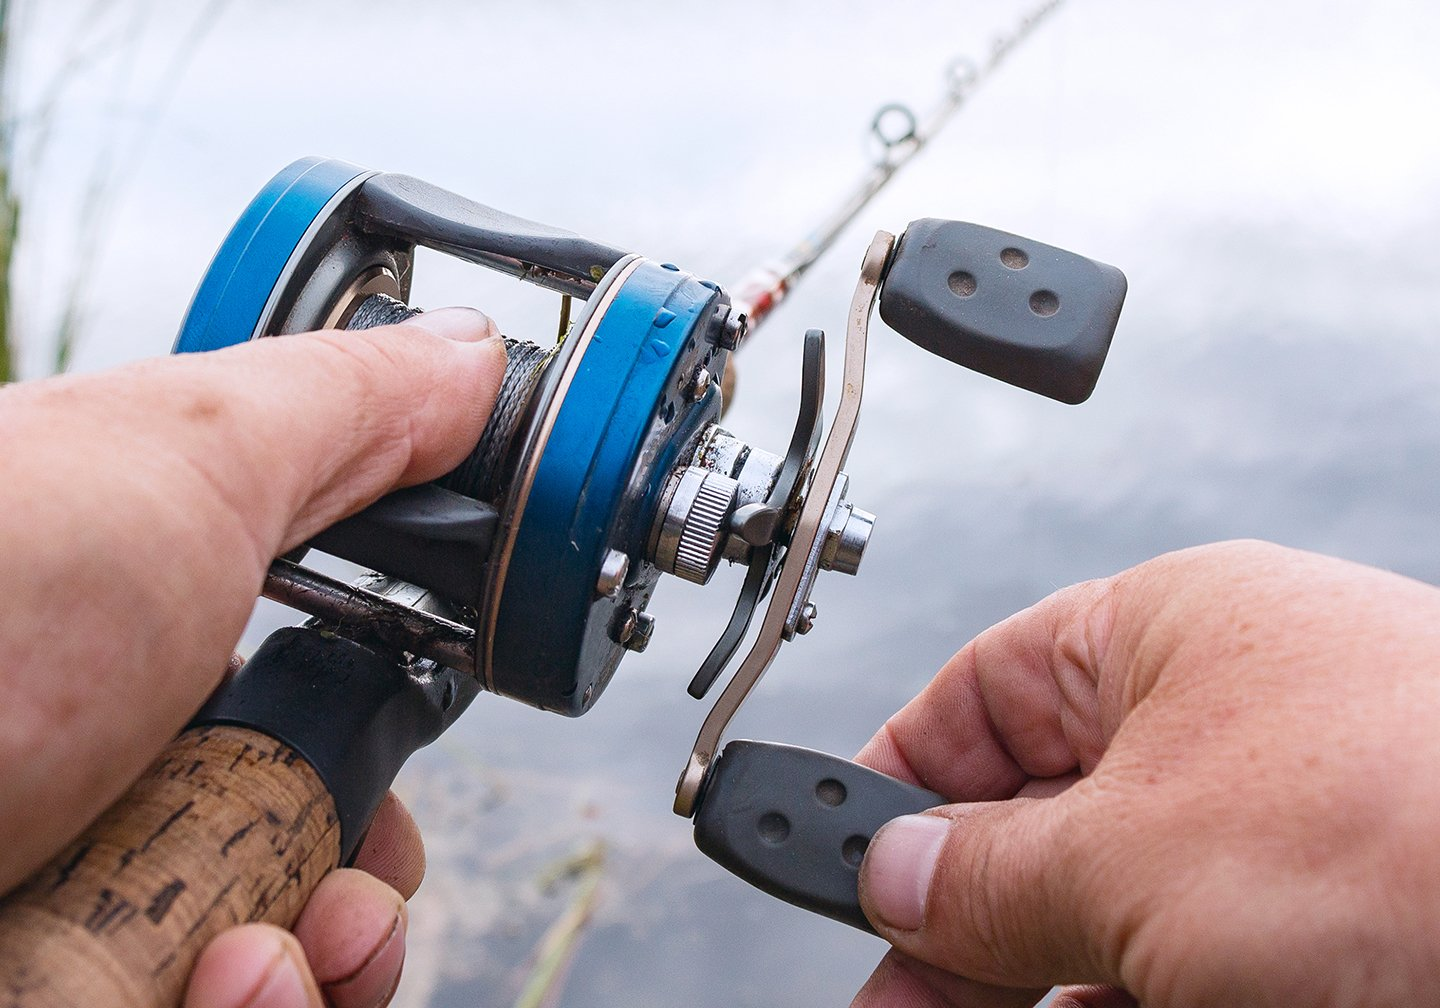 A baitcaster fishing reel being held near some water.